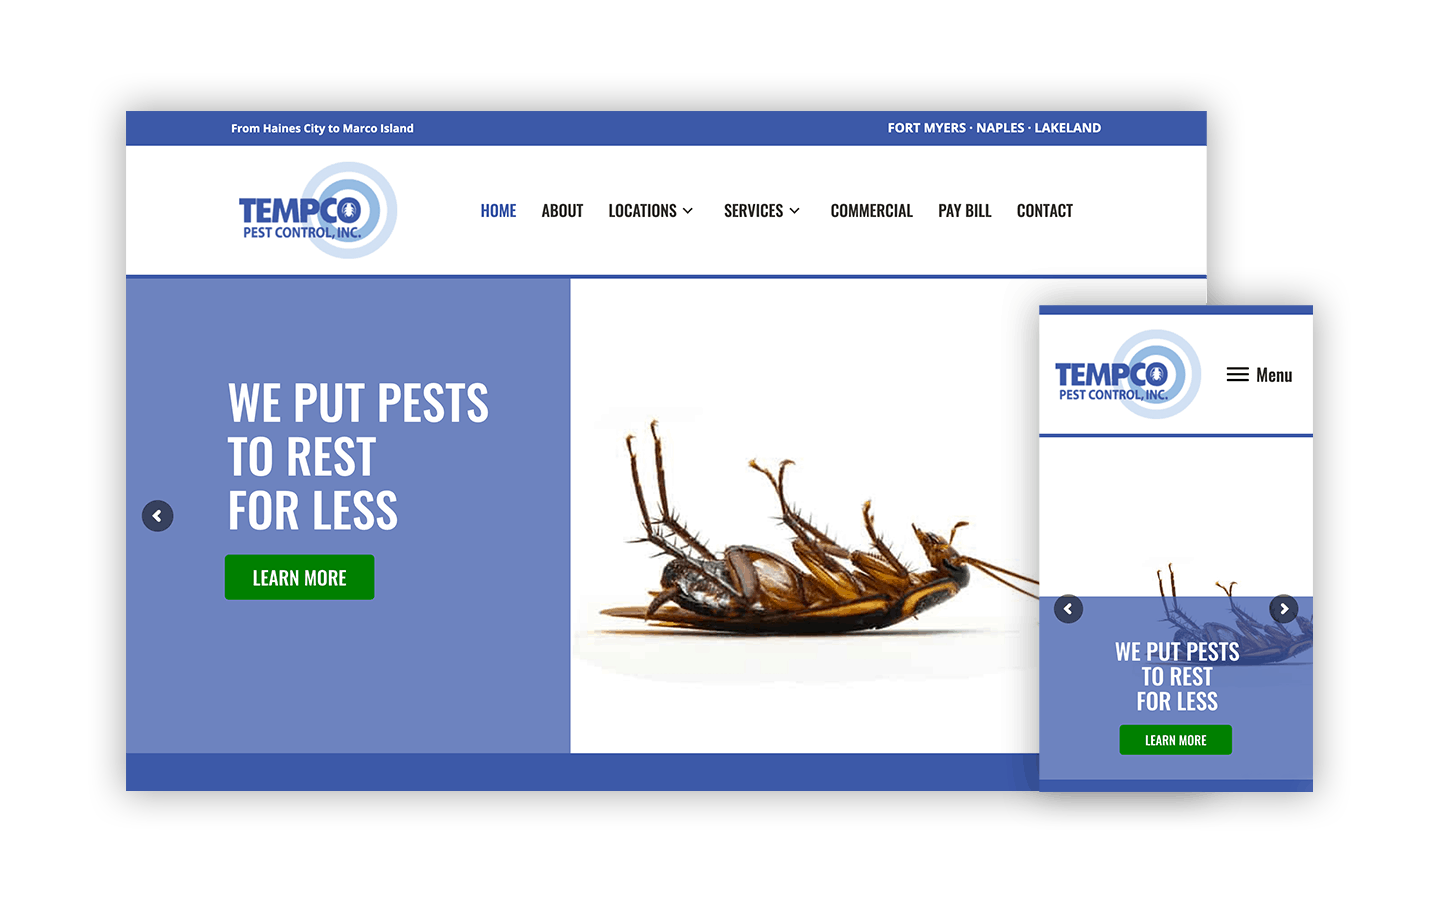 Tempco Pest Control Website in desktop and mobile view.